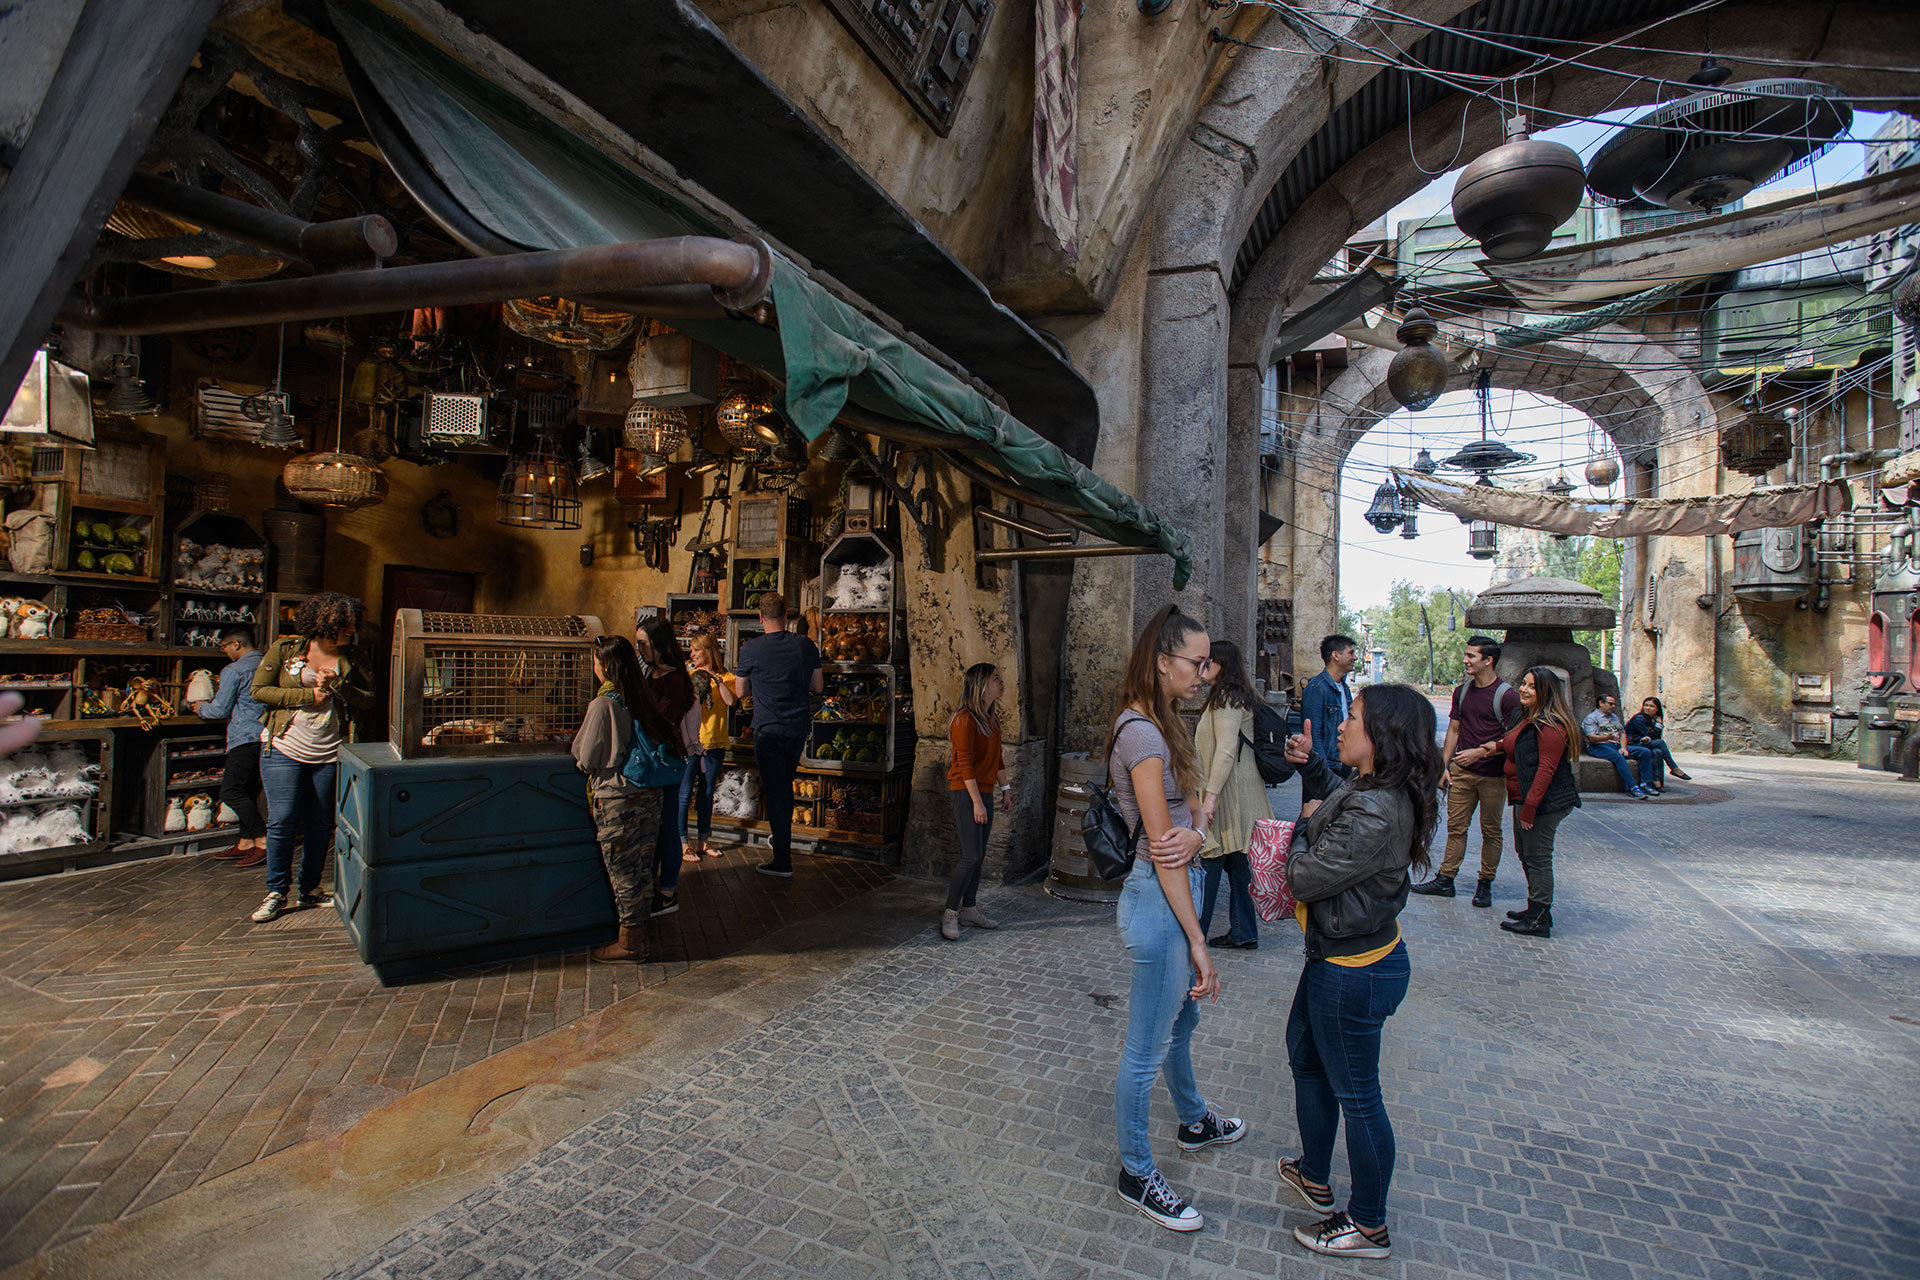 Nine different retail locations in the lands offer nearly 700 unique items, ideal for those looking to take a memory of Star Wars: Galaxy's Edge home with them.